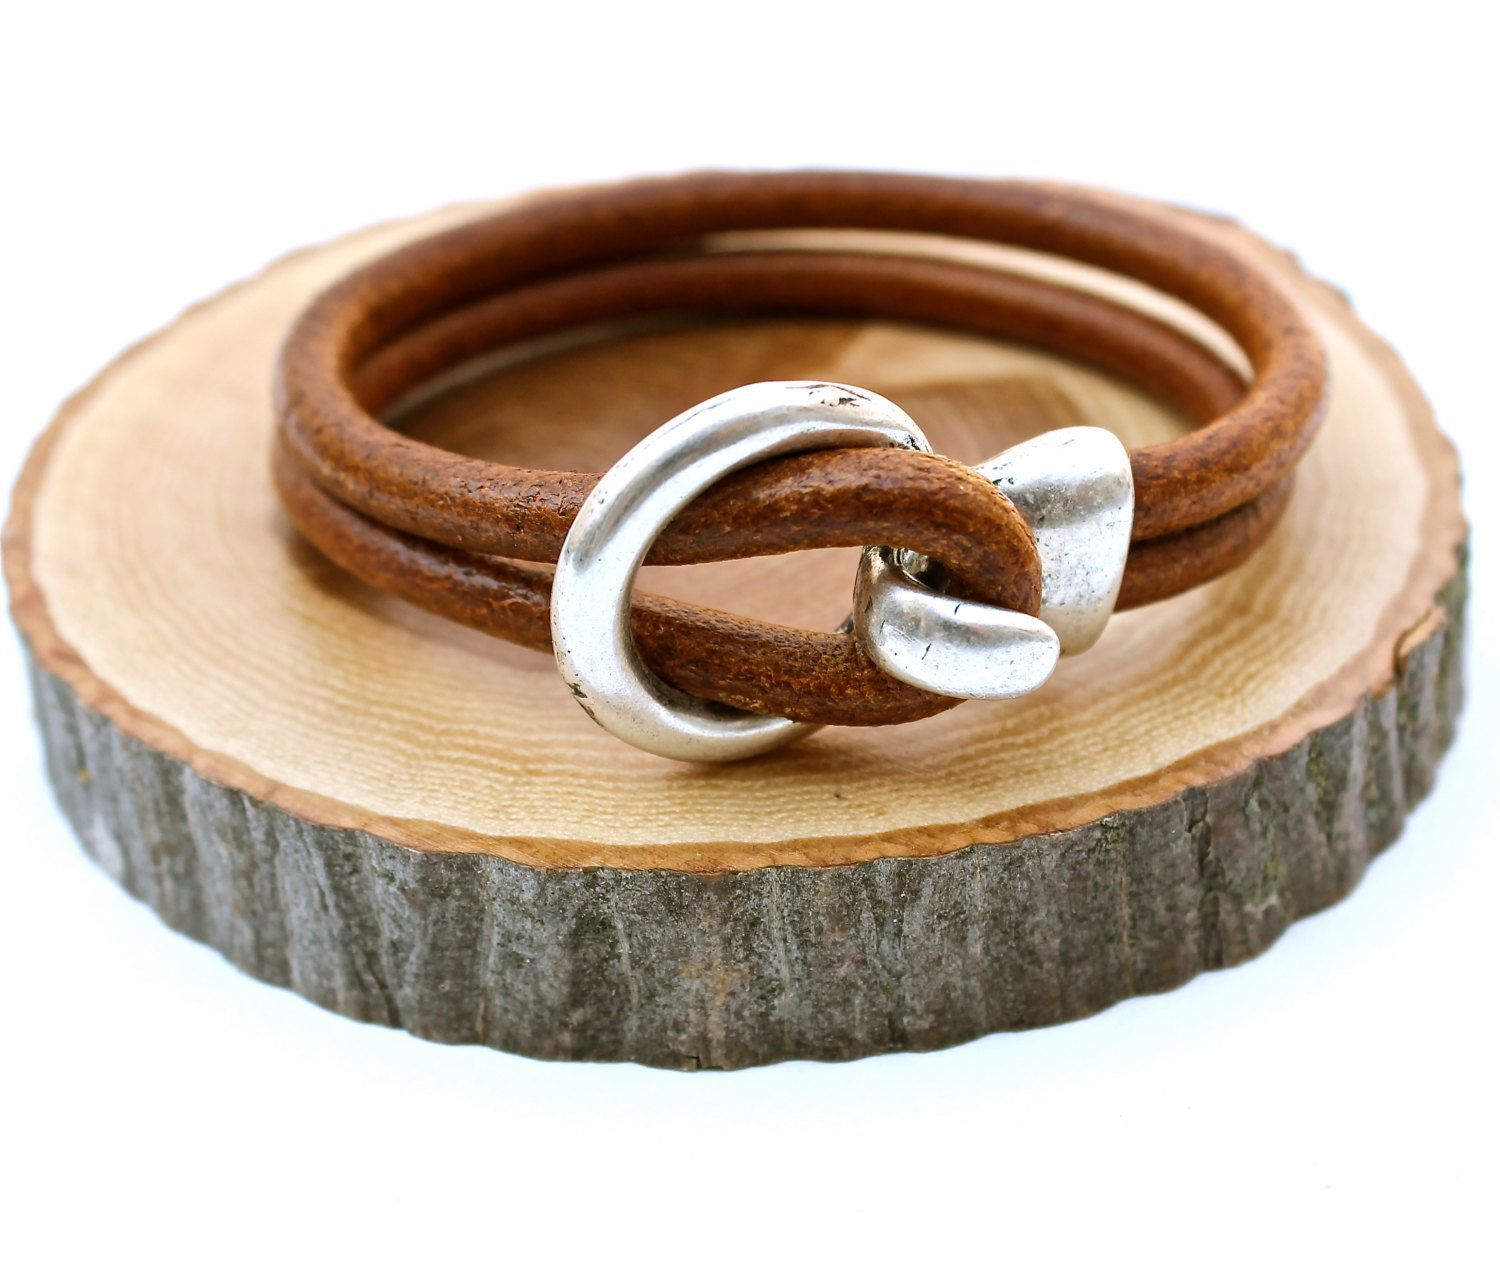 Dude Bracelet Simple Leather Bangle Mens Uni Jewelry Amy Fine Design By Amyfinedesign On Etsy